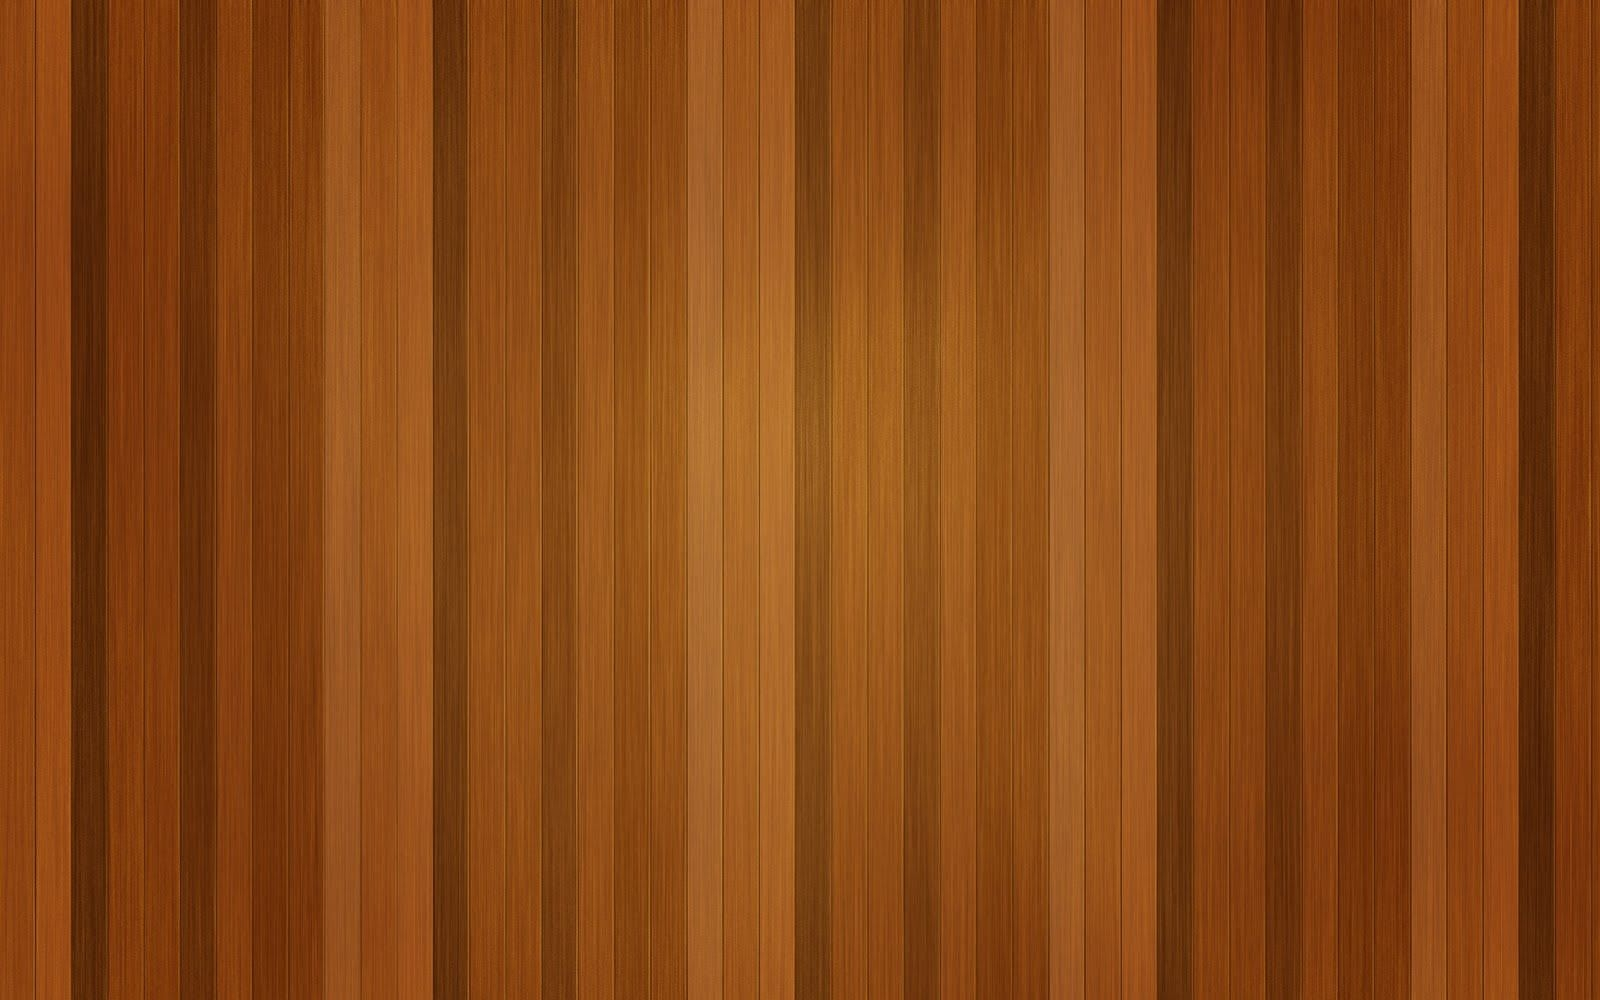 20 wood desktop backgrounds freecreatives for Wood wallpaper for walls